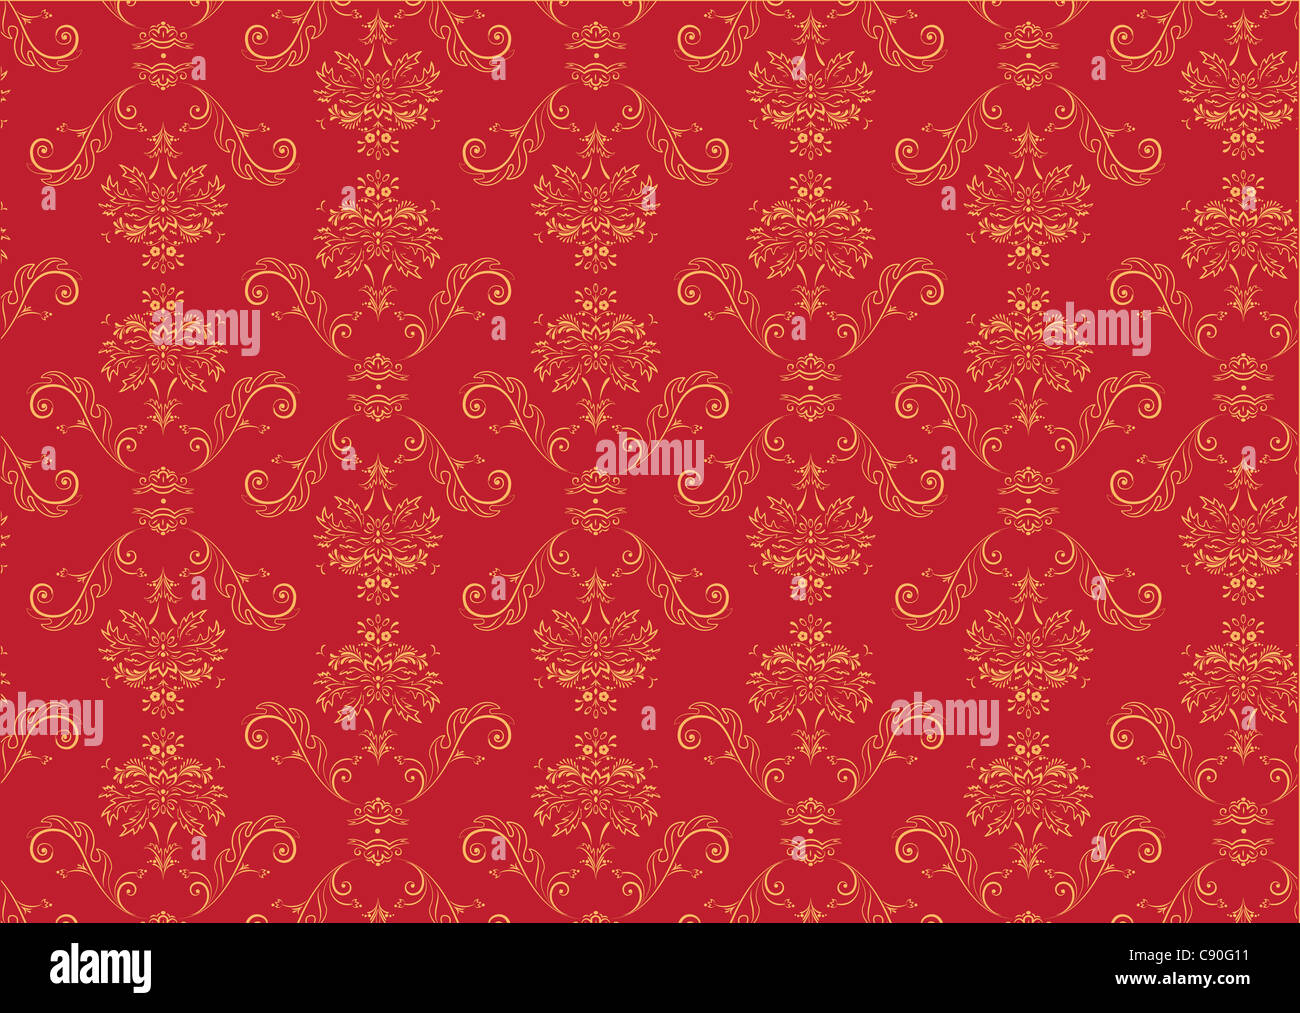 illustration of red elegant victorian retro motif wallpaper pattern stock photo royalty free. Black Bedroom Furniture Sets. Home Design Ideas